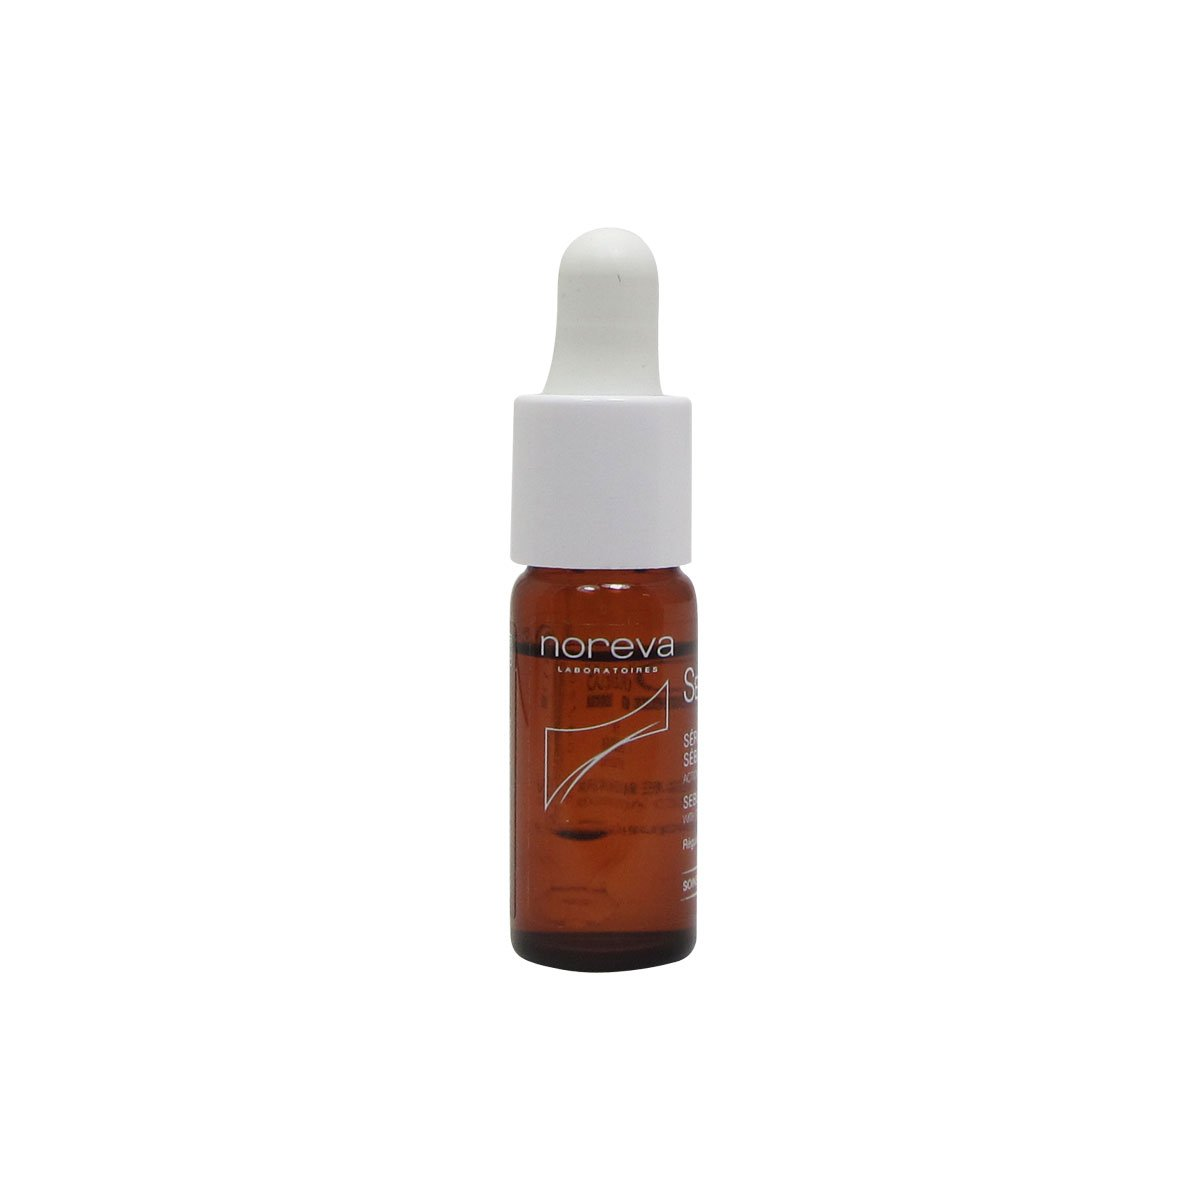 Noreva Sebodiane Ds Sebum-regulating Serum 8ml 2177